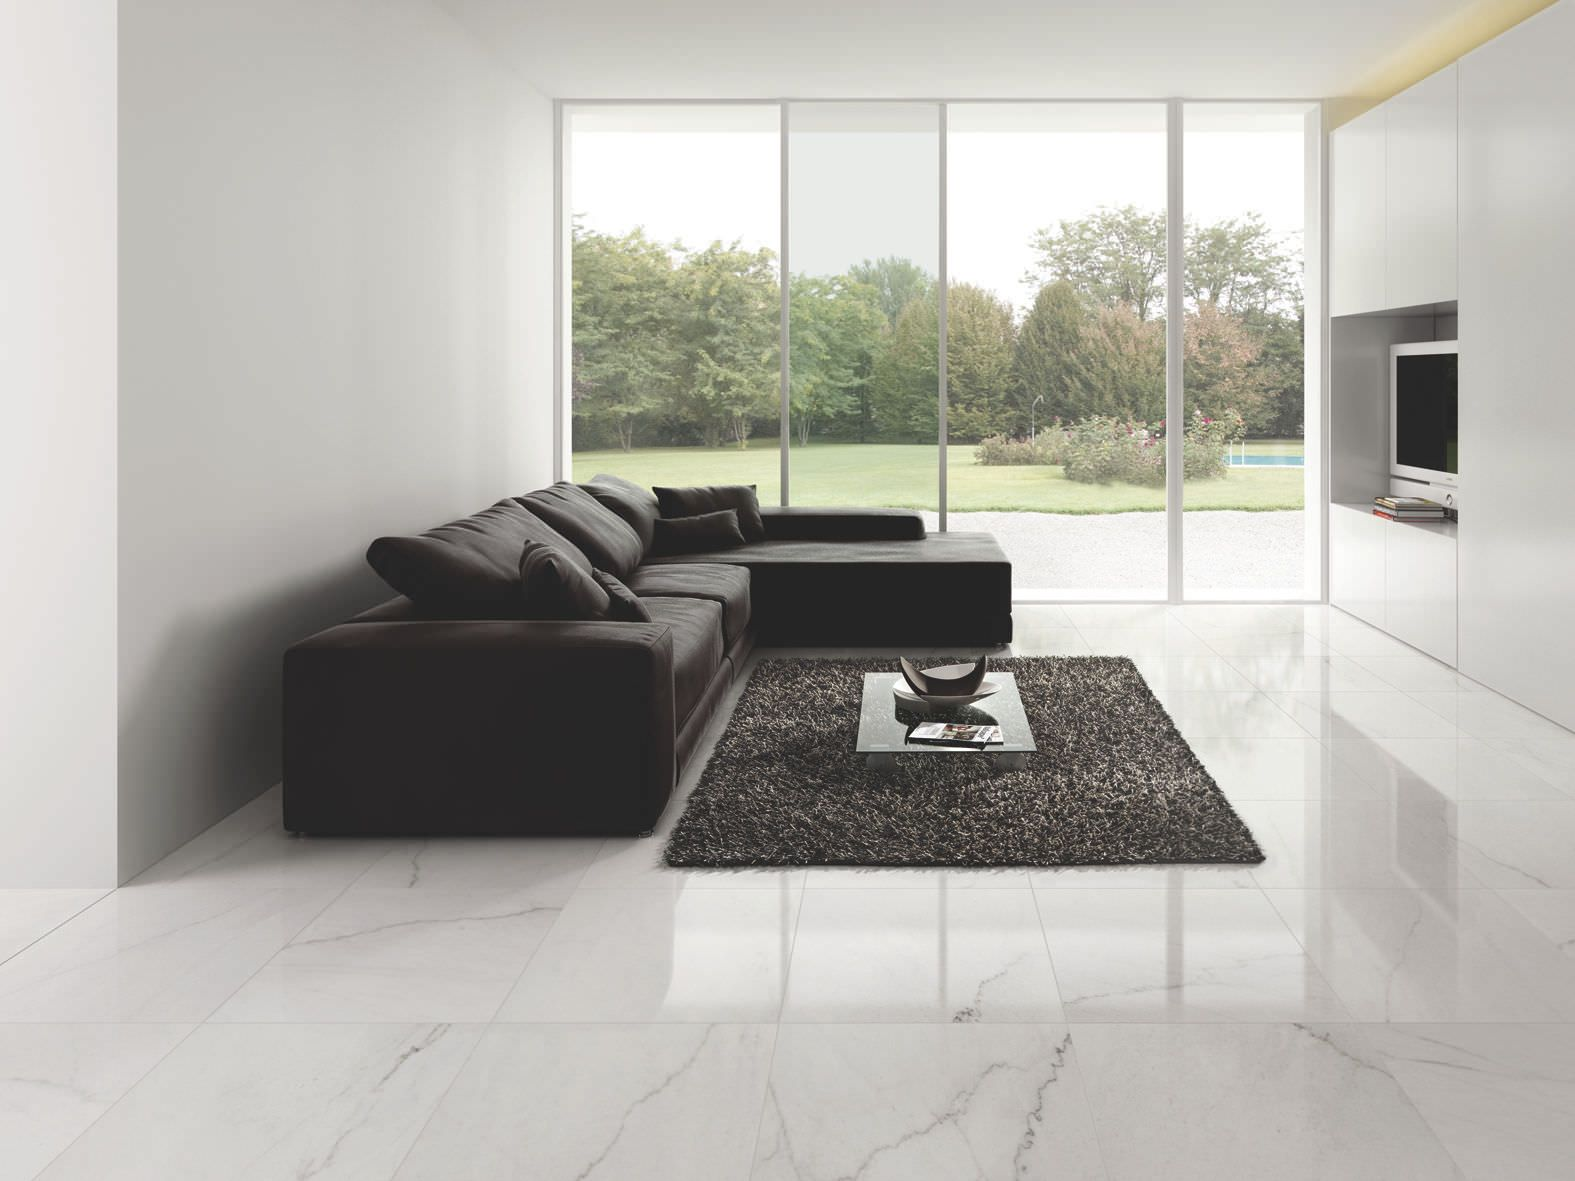 Interior, Marble's Grout Lines In Porcelain Tiles Flooring